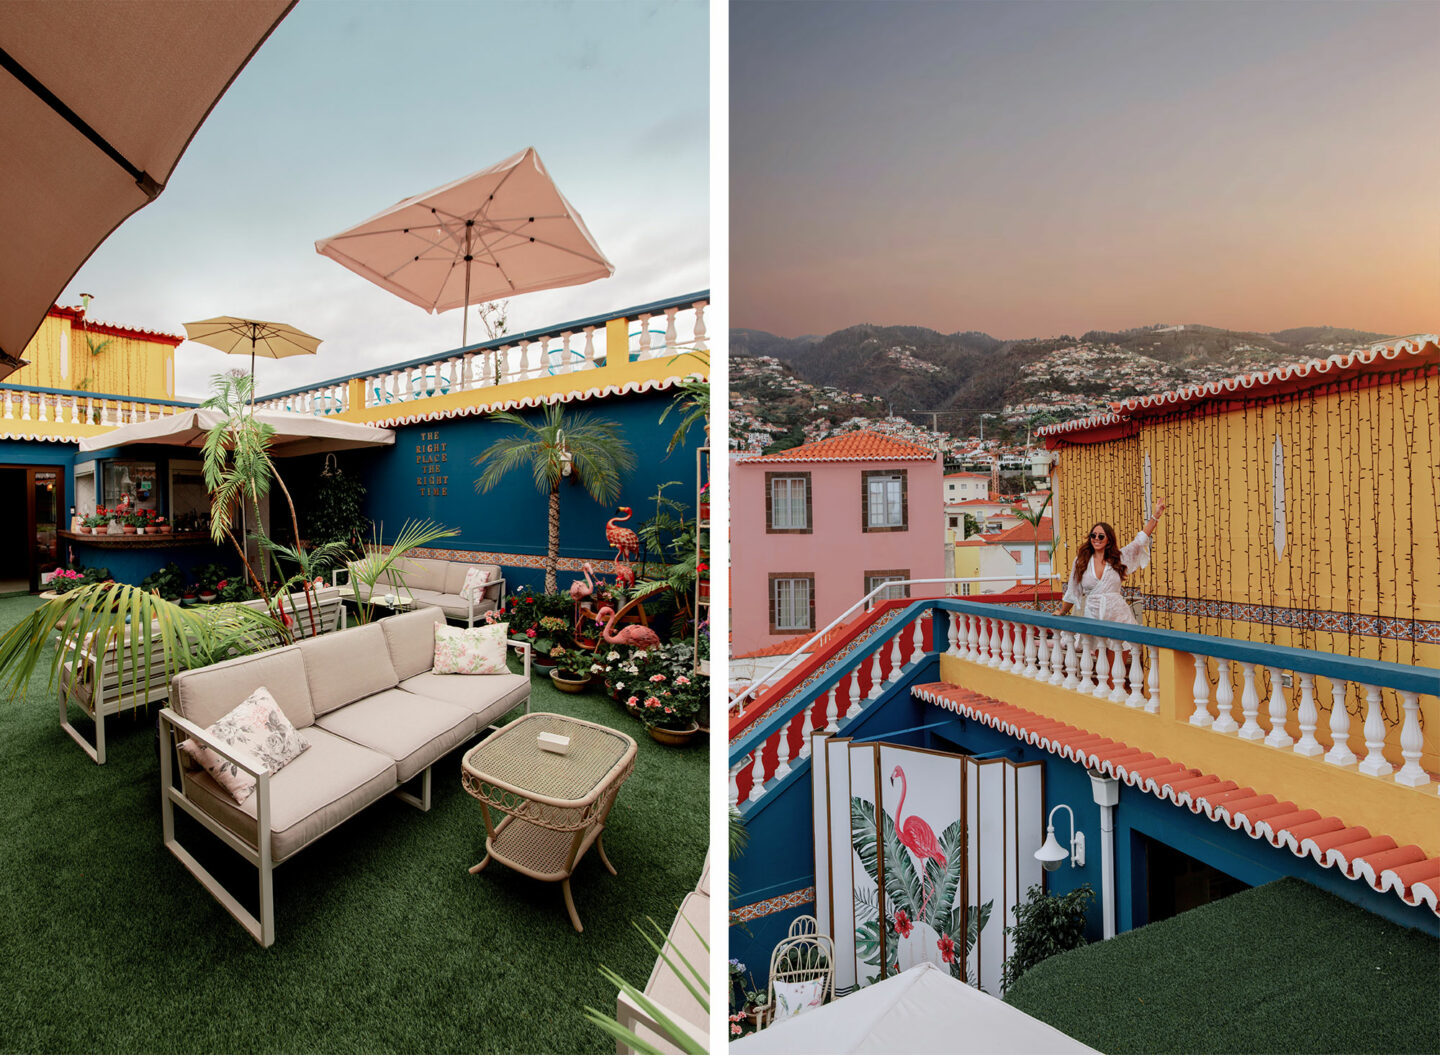 Sé Boutique Hotel-Top-things-to-do-in-madeira-Bucket-list--Instagram-Story-Template--kelseyinlondon-Kelsey-Heinrichs--What-to-do-in-madeira--Where-to-go-in-madeira-top-places-in-madeira-